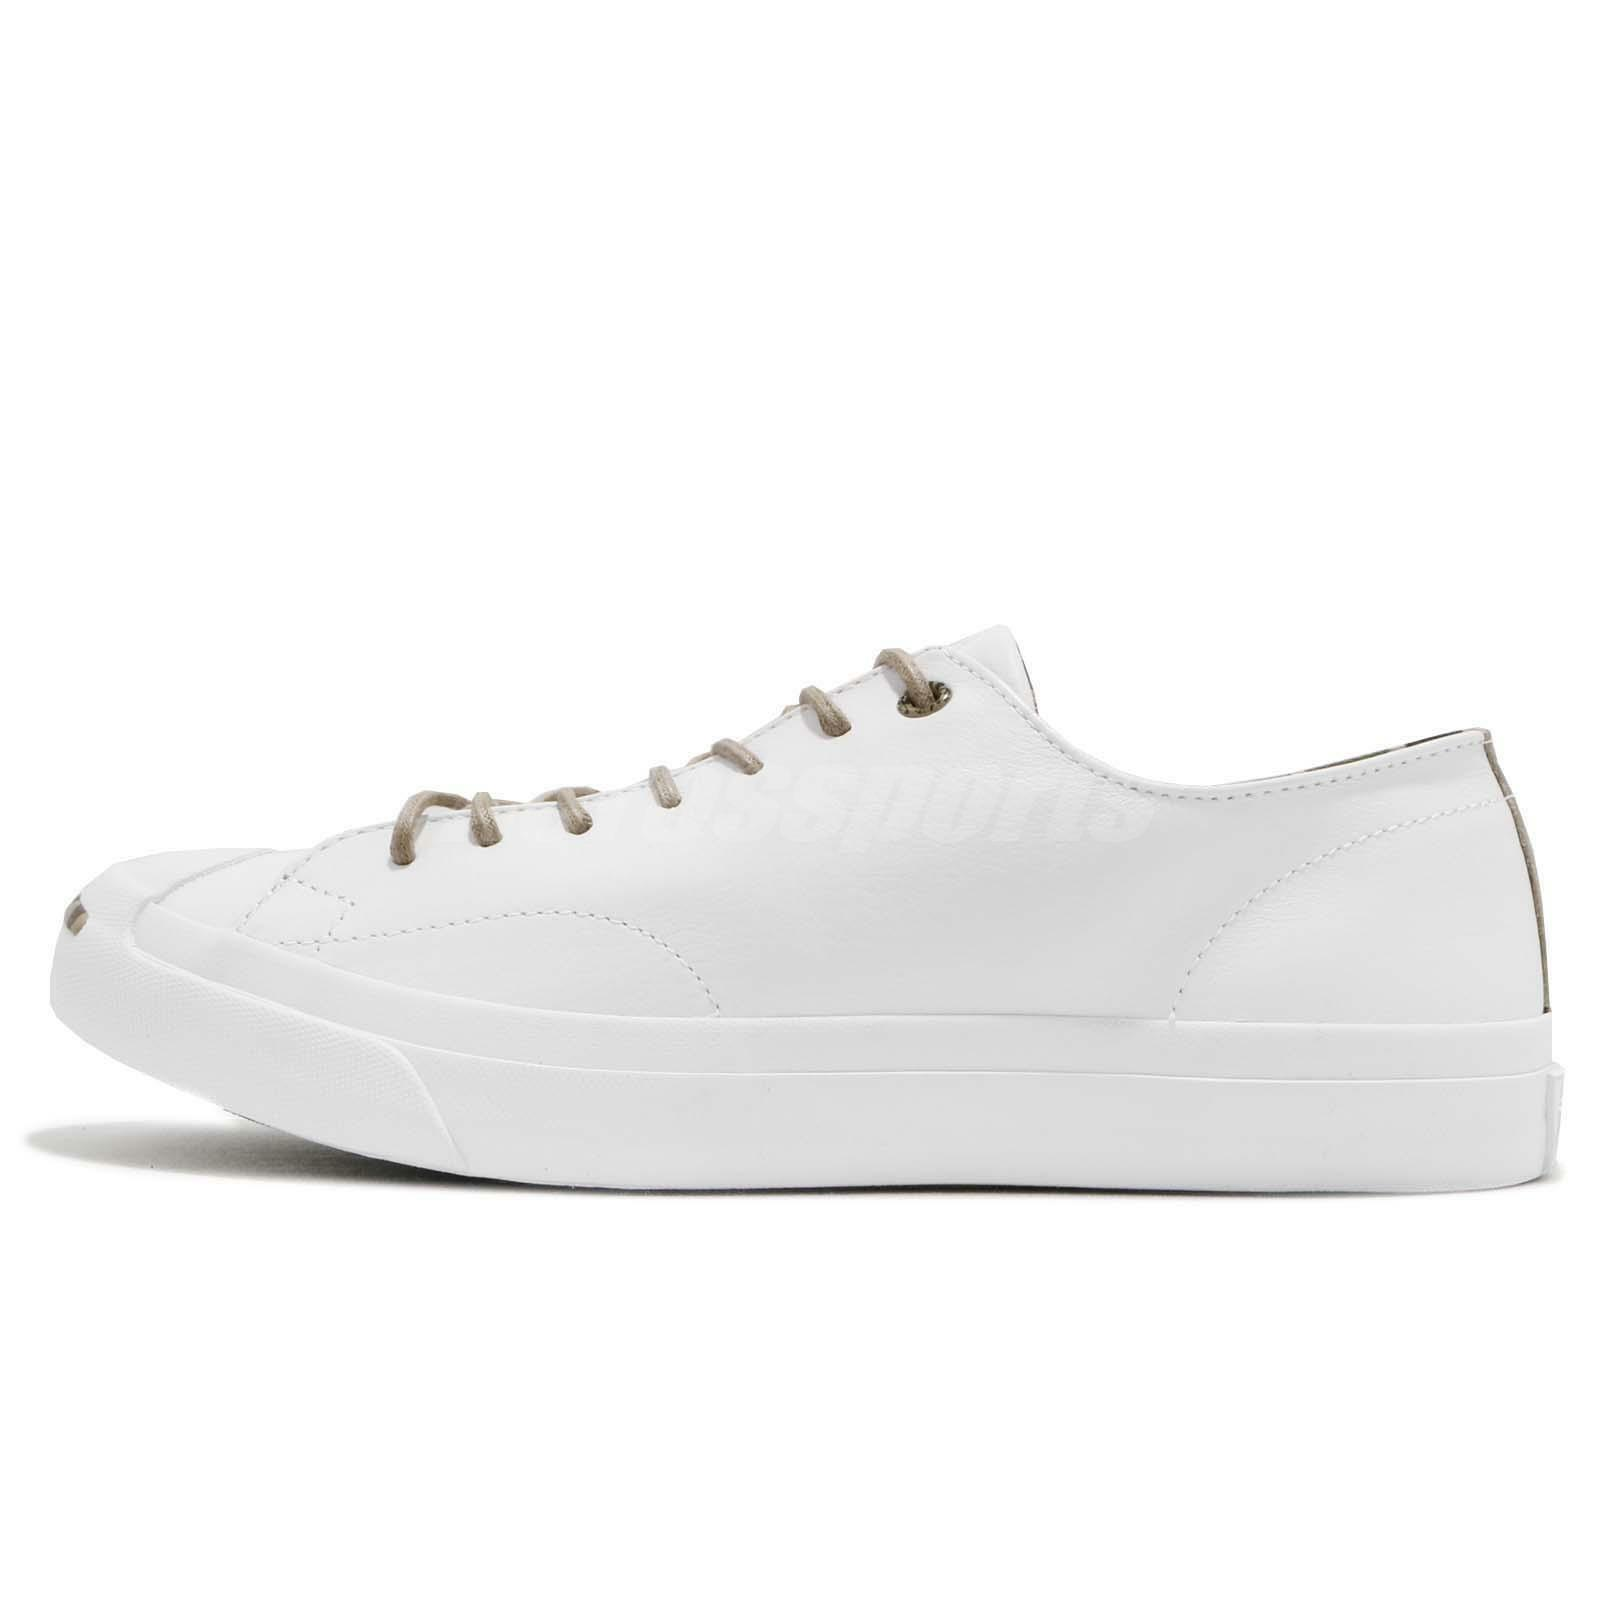 NEW Converse Jack Purcell  Leather Ox White 160214C  Purcell US Mens 10 d27e35